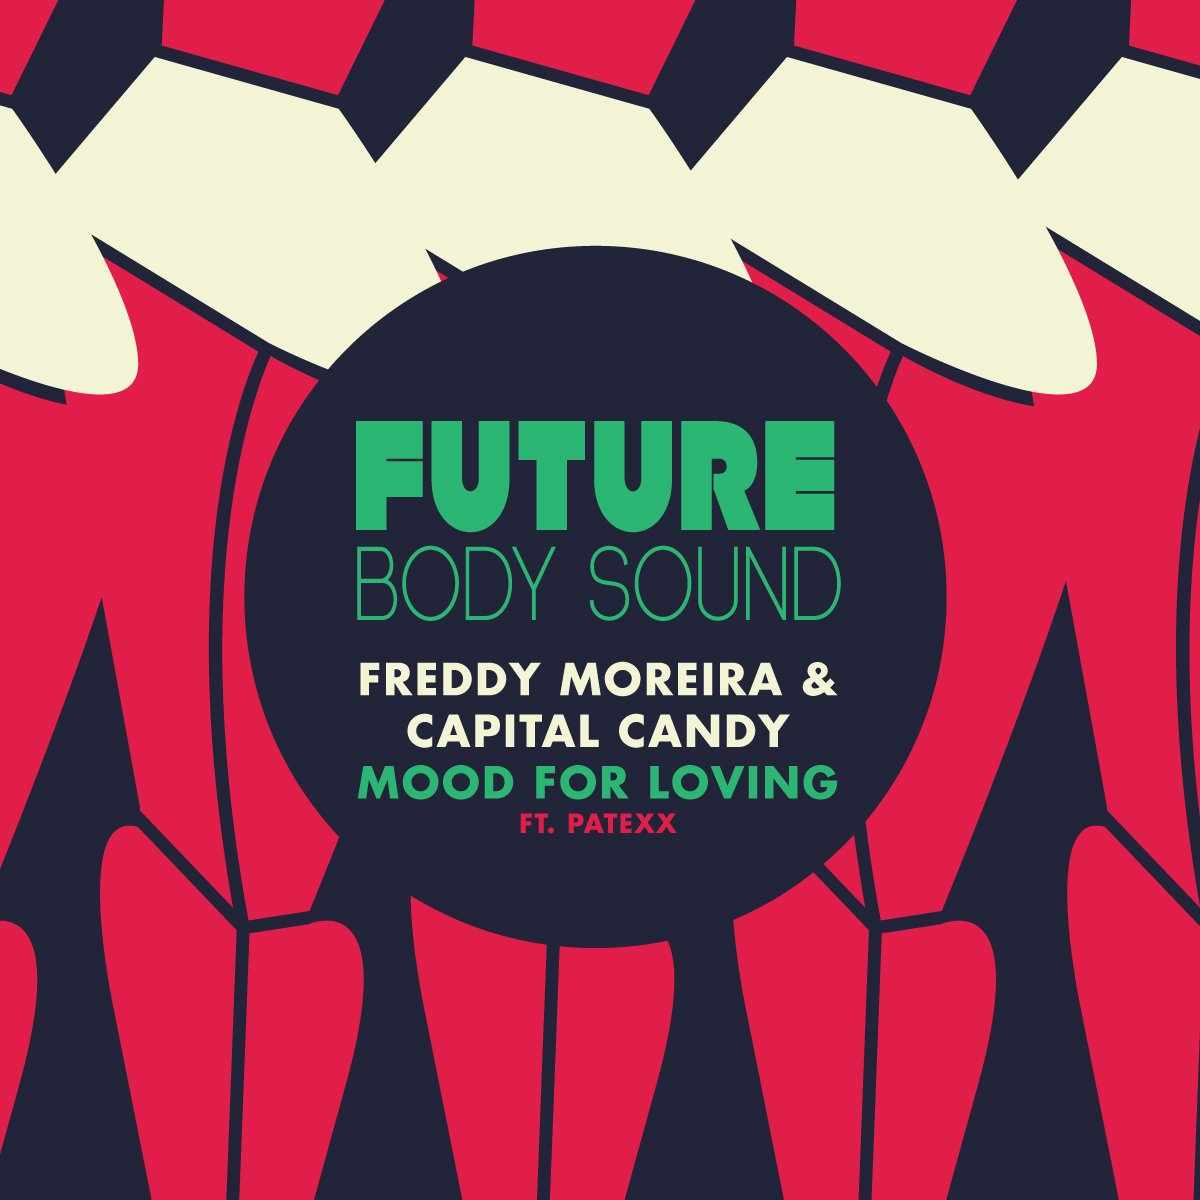 Go get it! My new track 'Mood For Loving' with @capitalcandynl https://t.co/Wi31lvFNfm https://t.co/RWN5Roz7jm